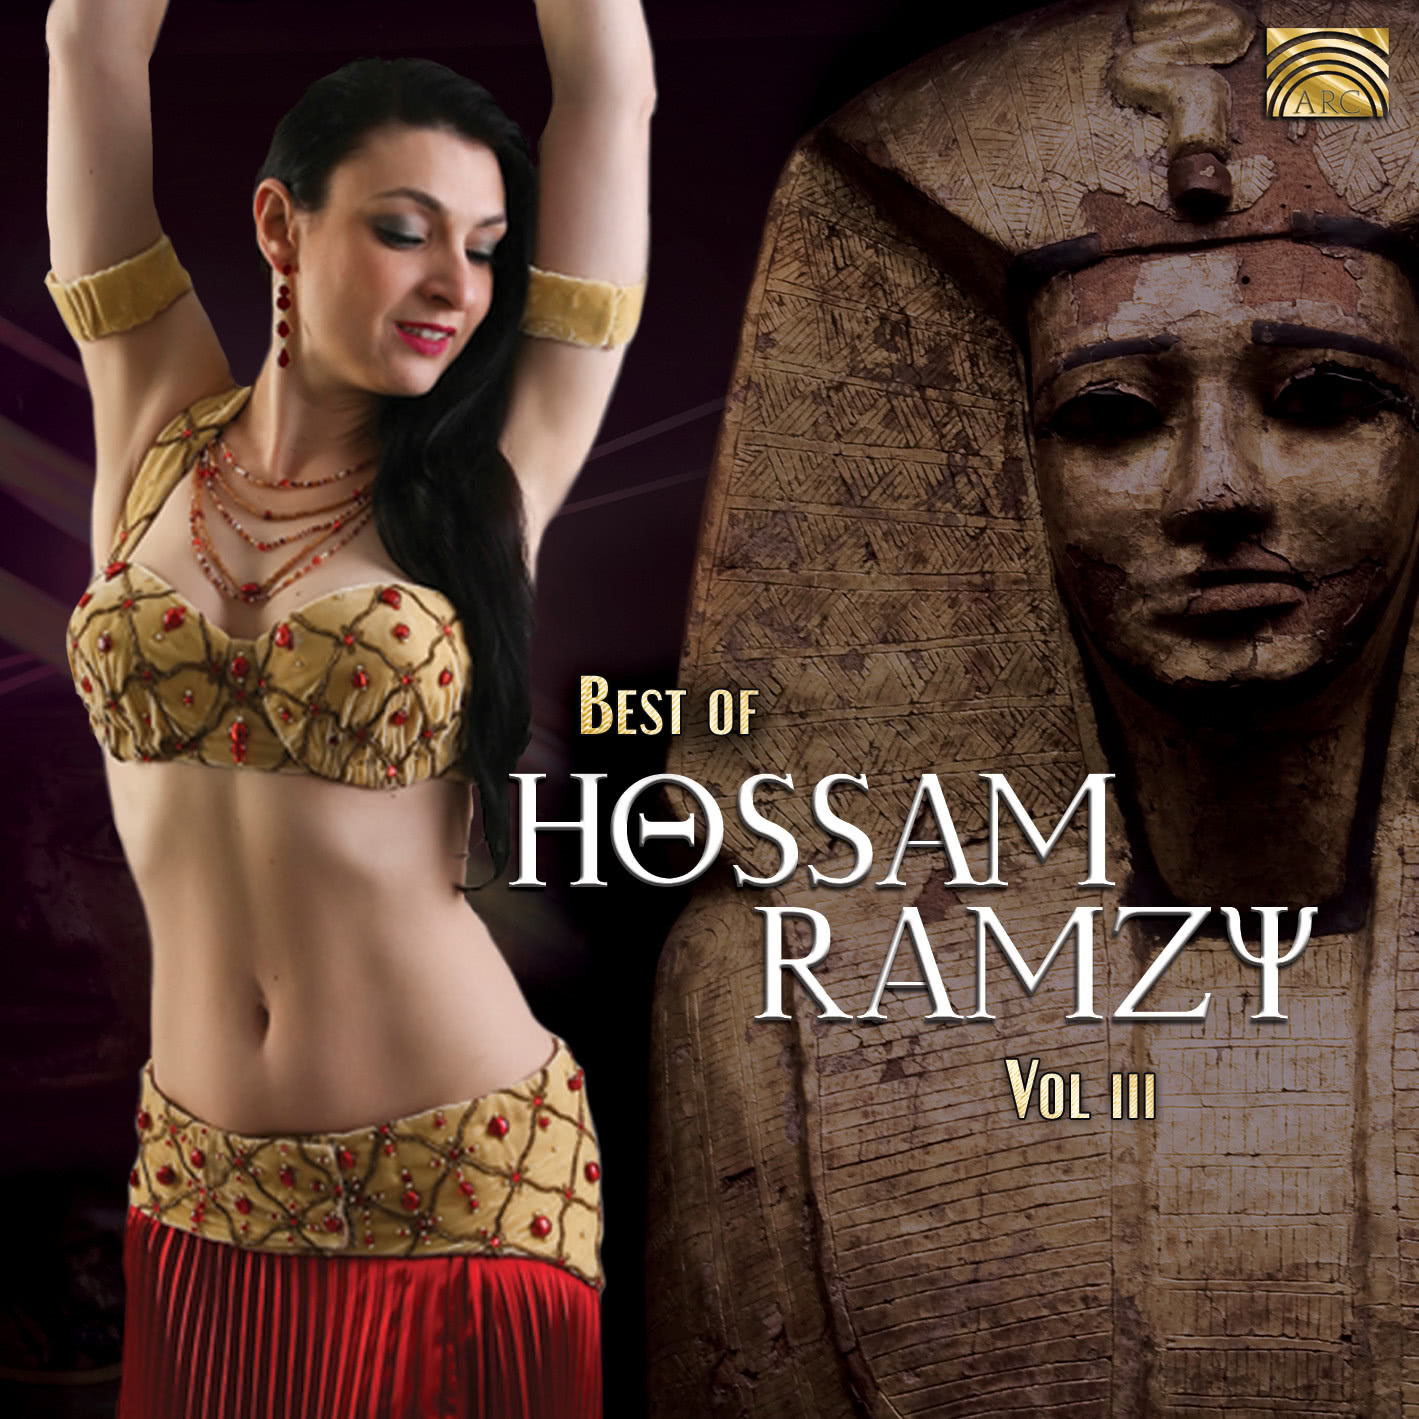 EUCD2500 The Best of Hossam Ramzy, Vol III